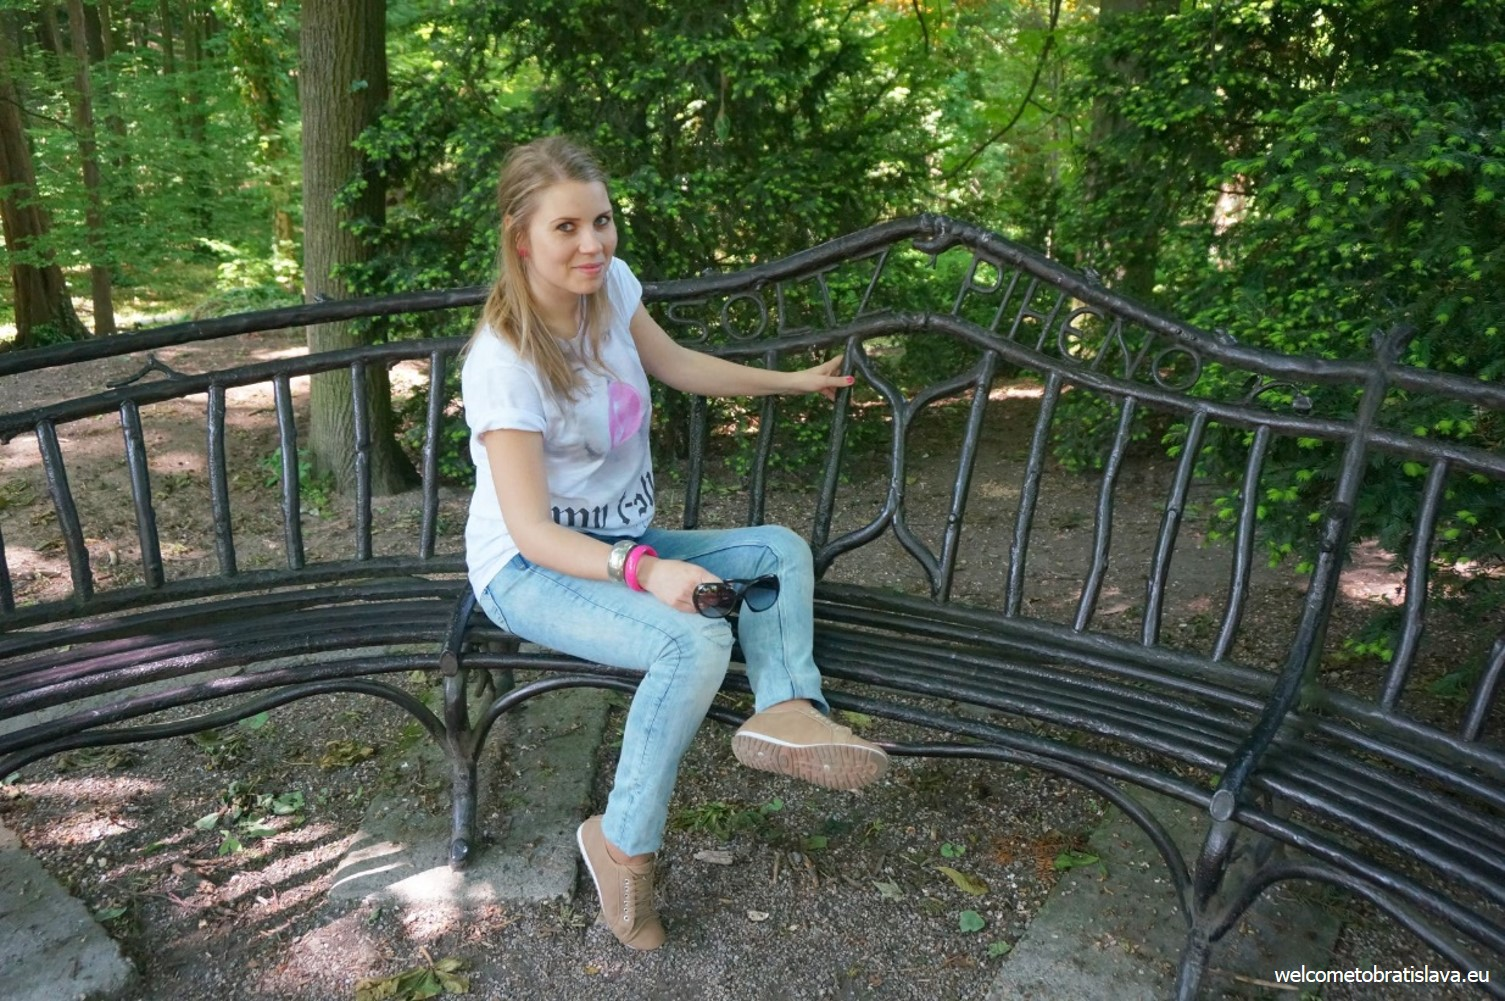 In the Horsky Park